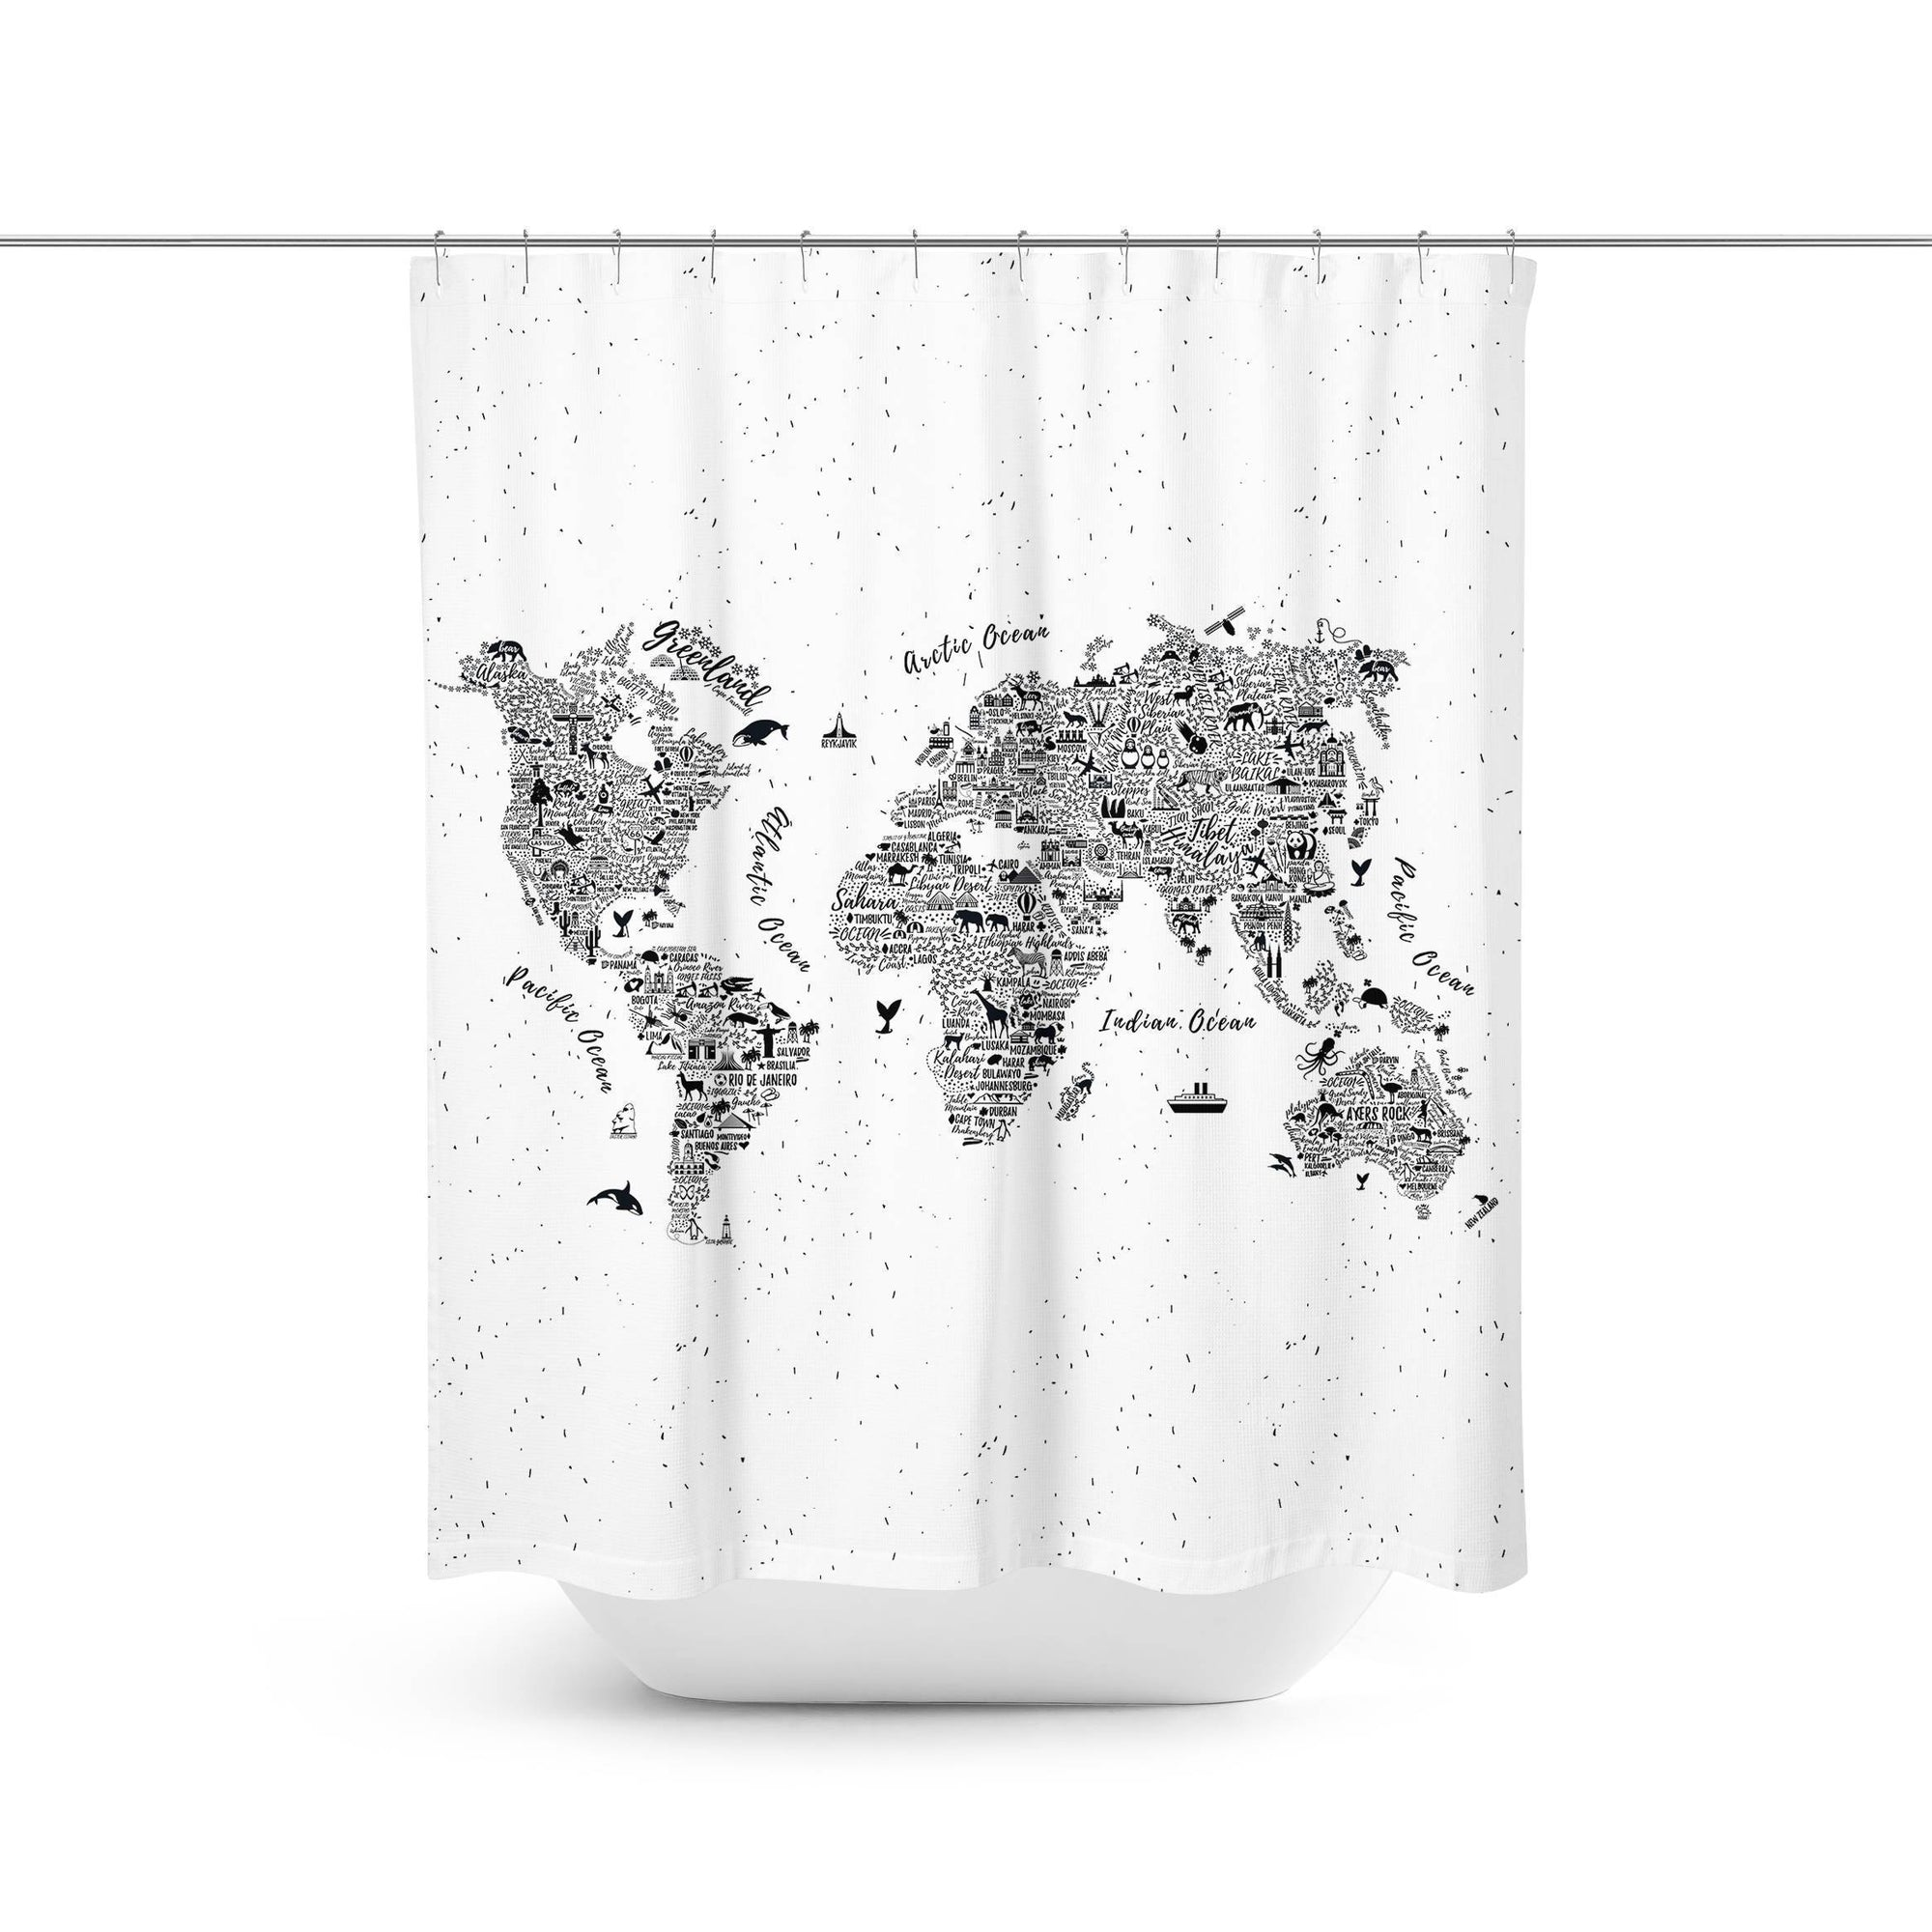 World Map Shower Curtain - Shower Curtains - W.FRANCIS